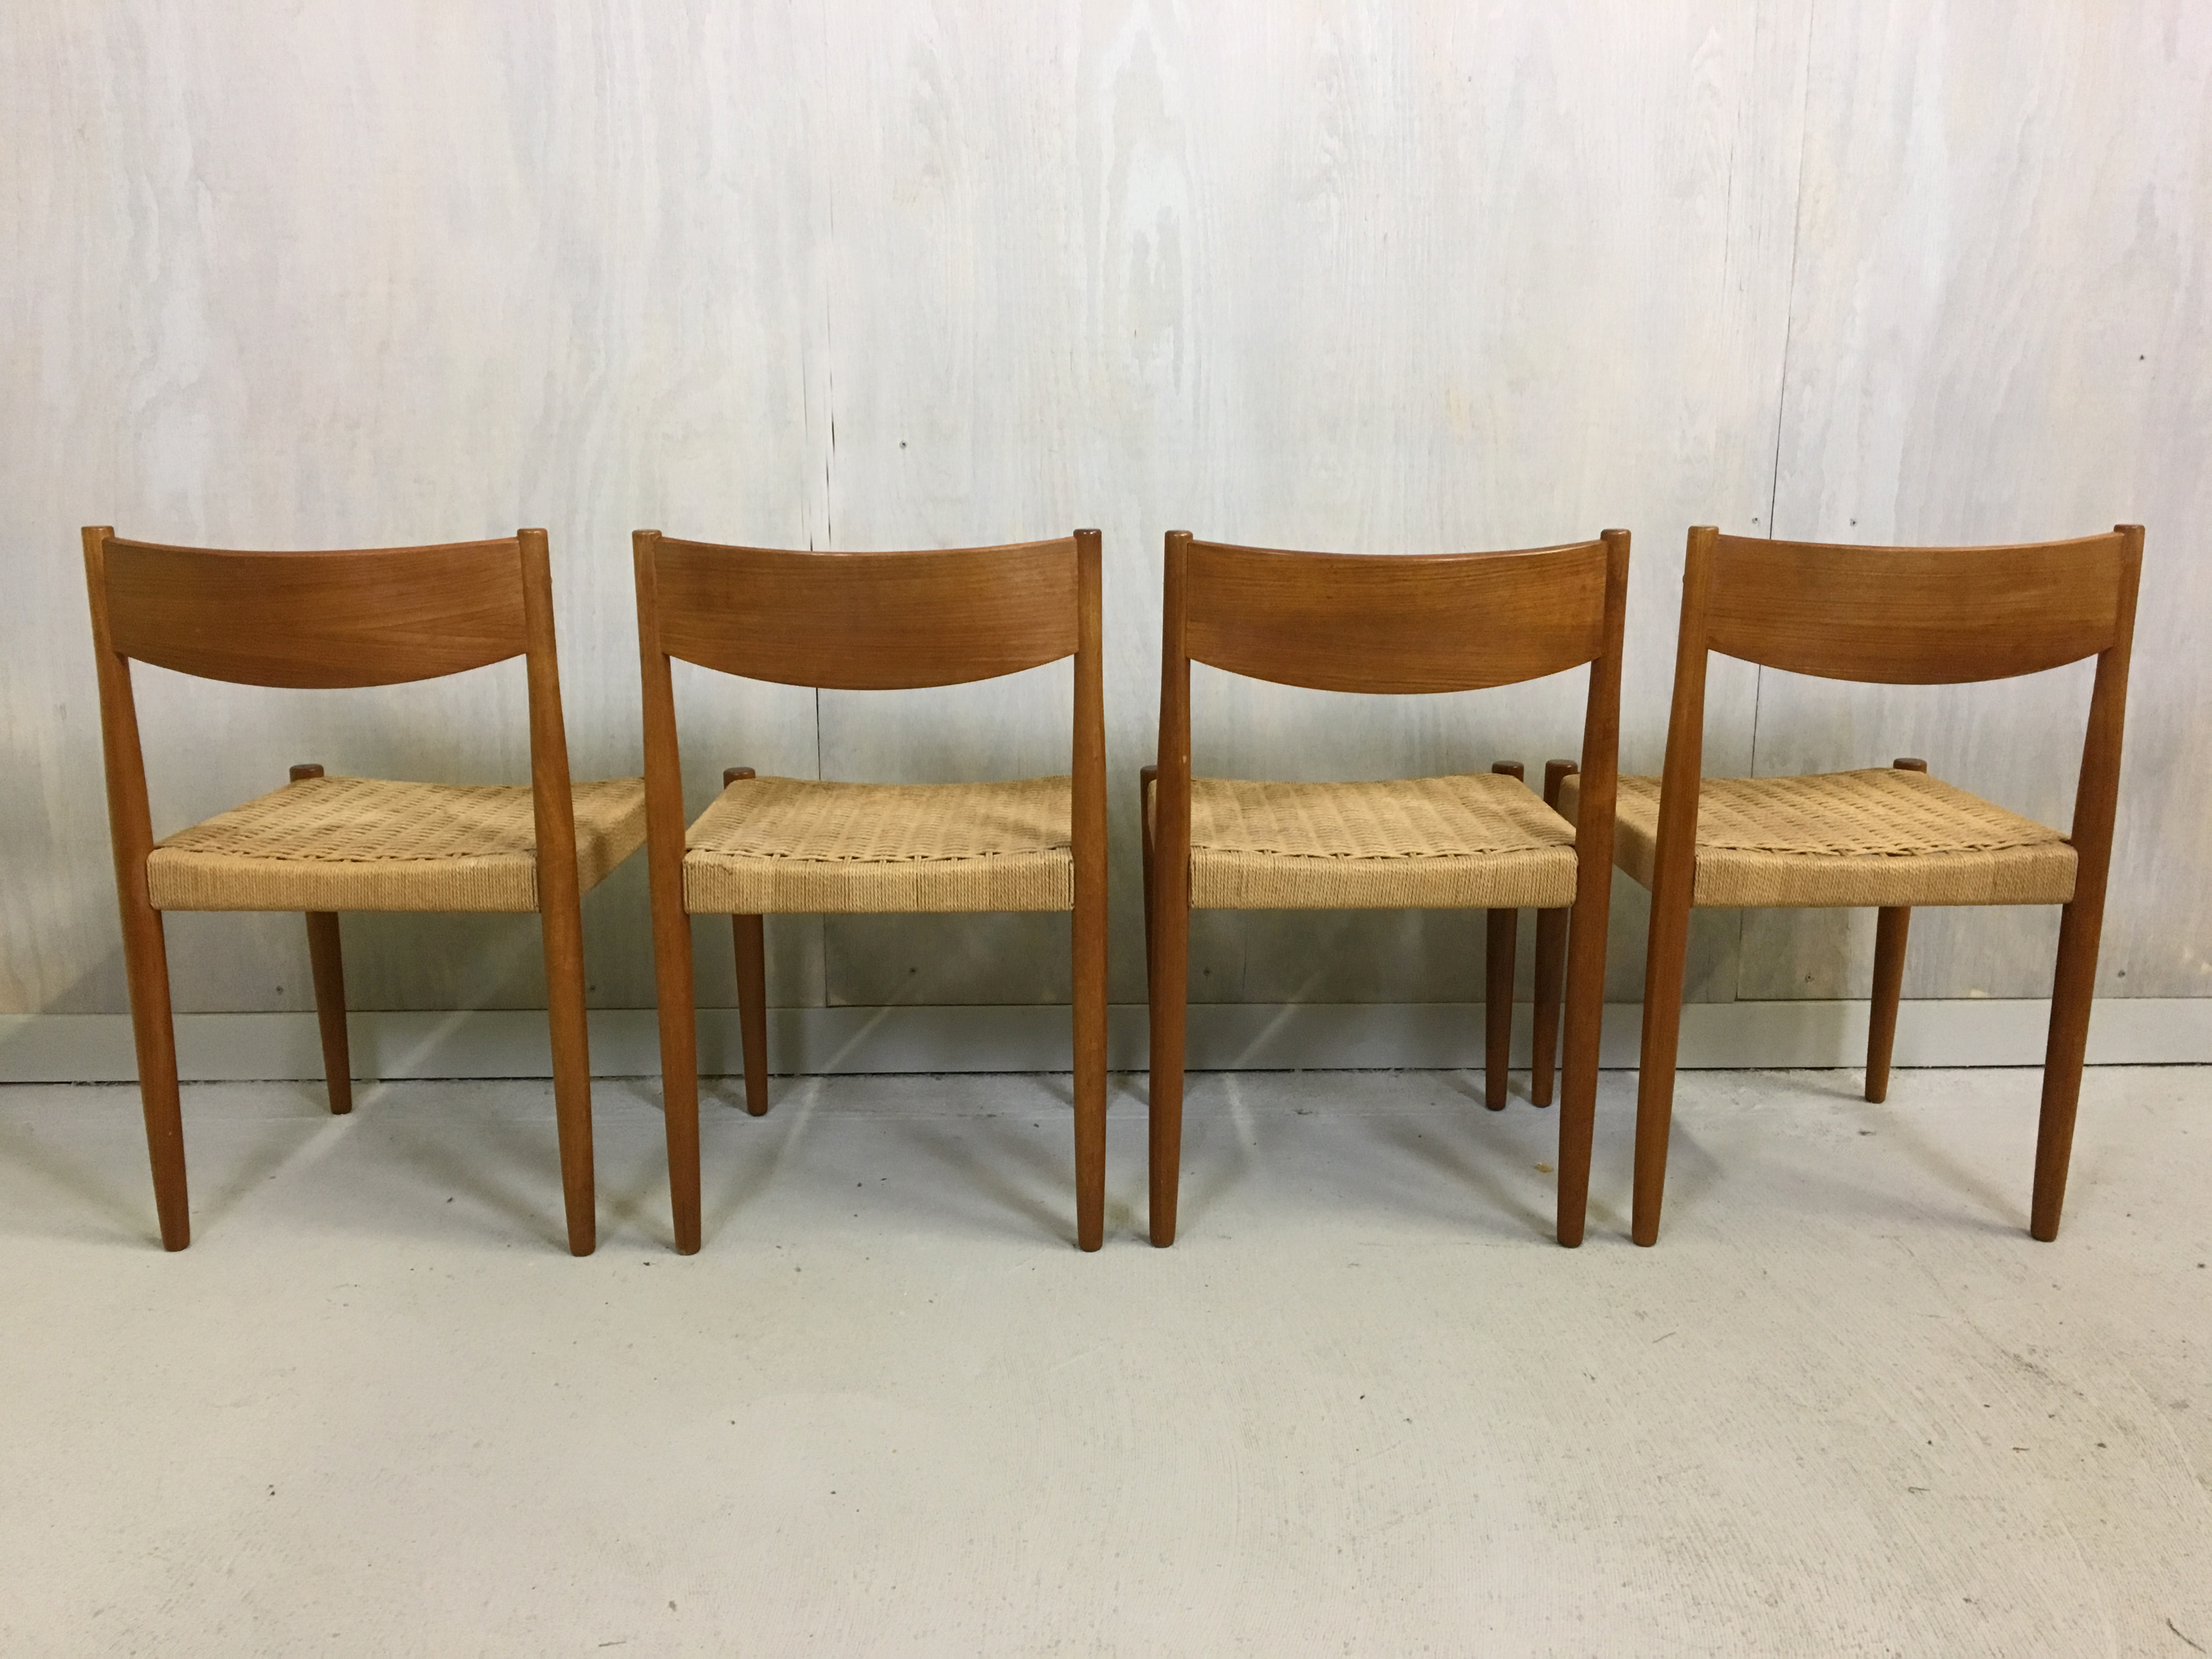 Poul Volther Danish Modern Dining Chairs